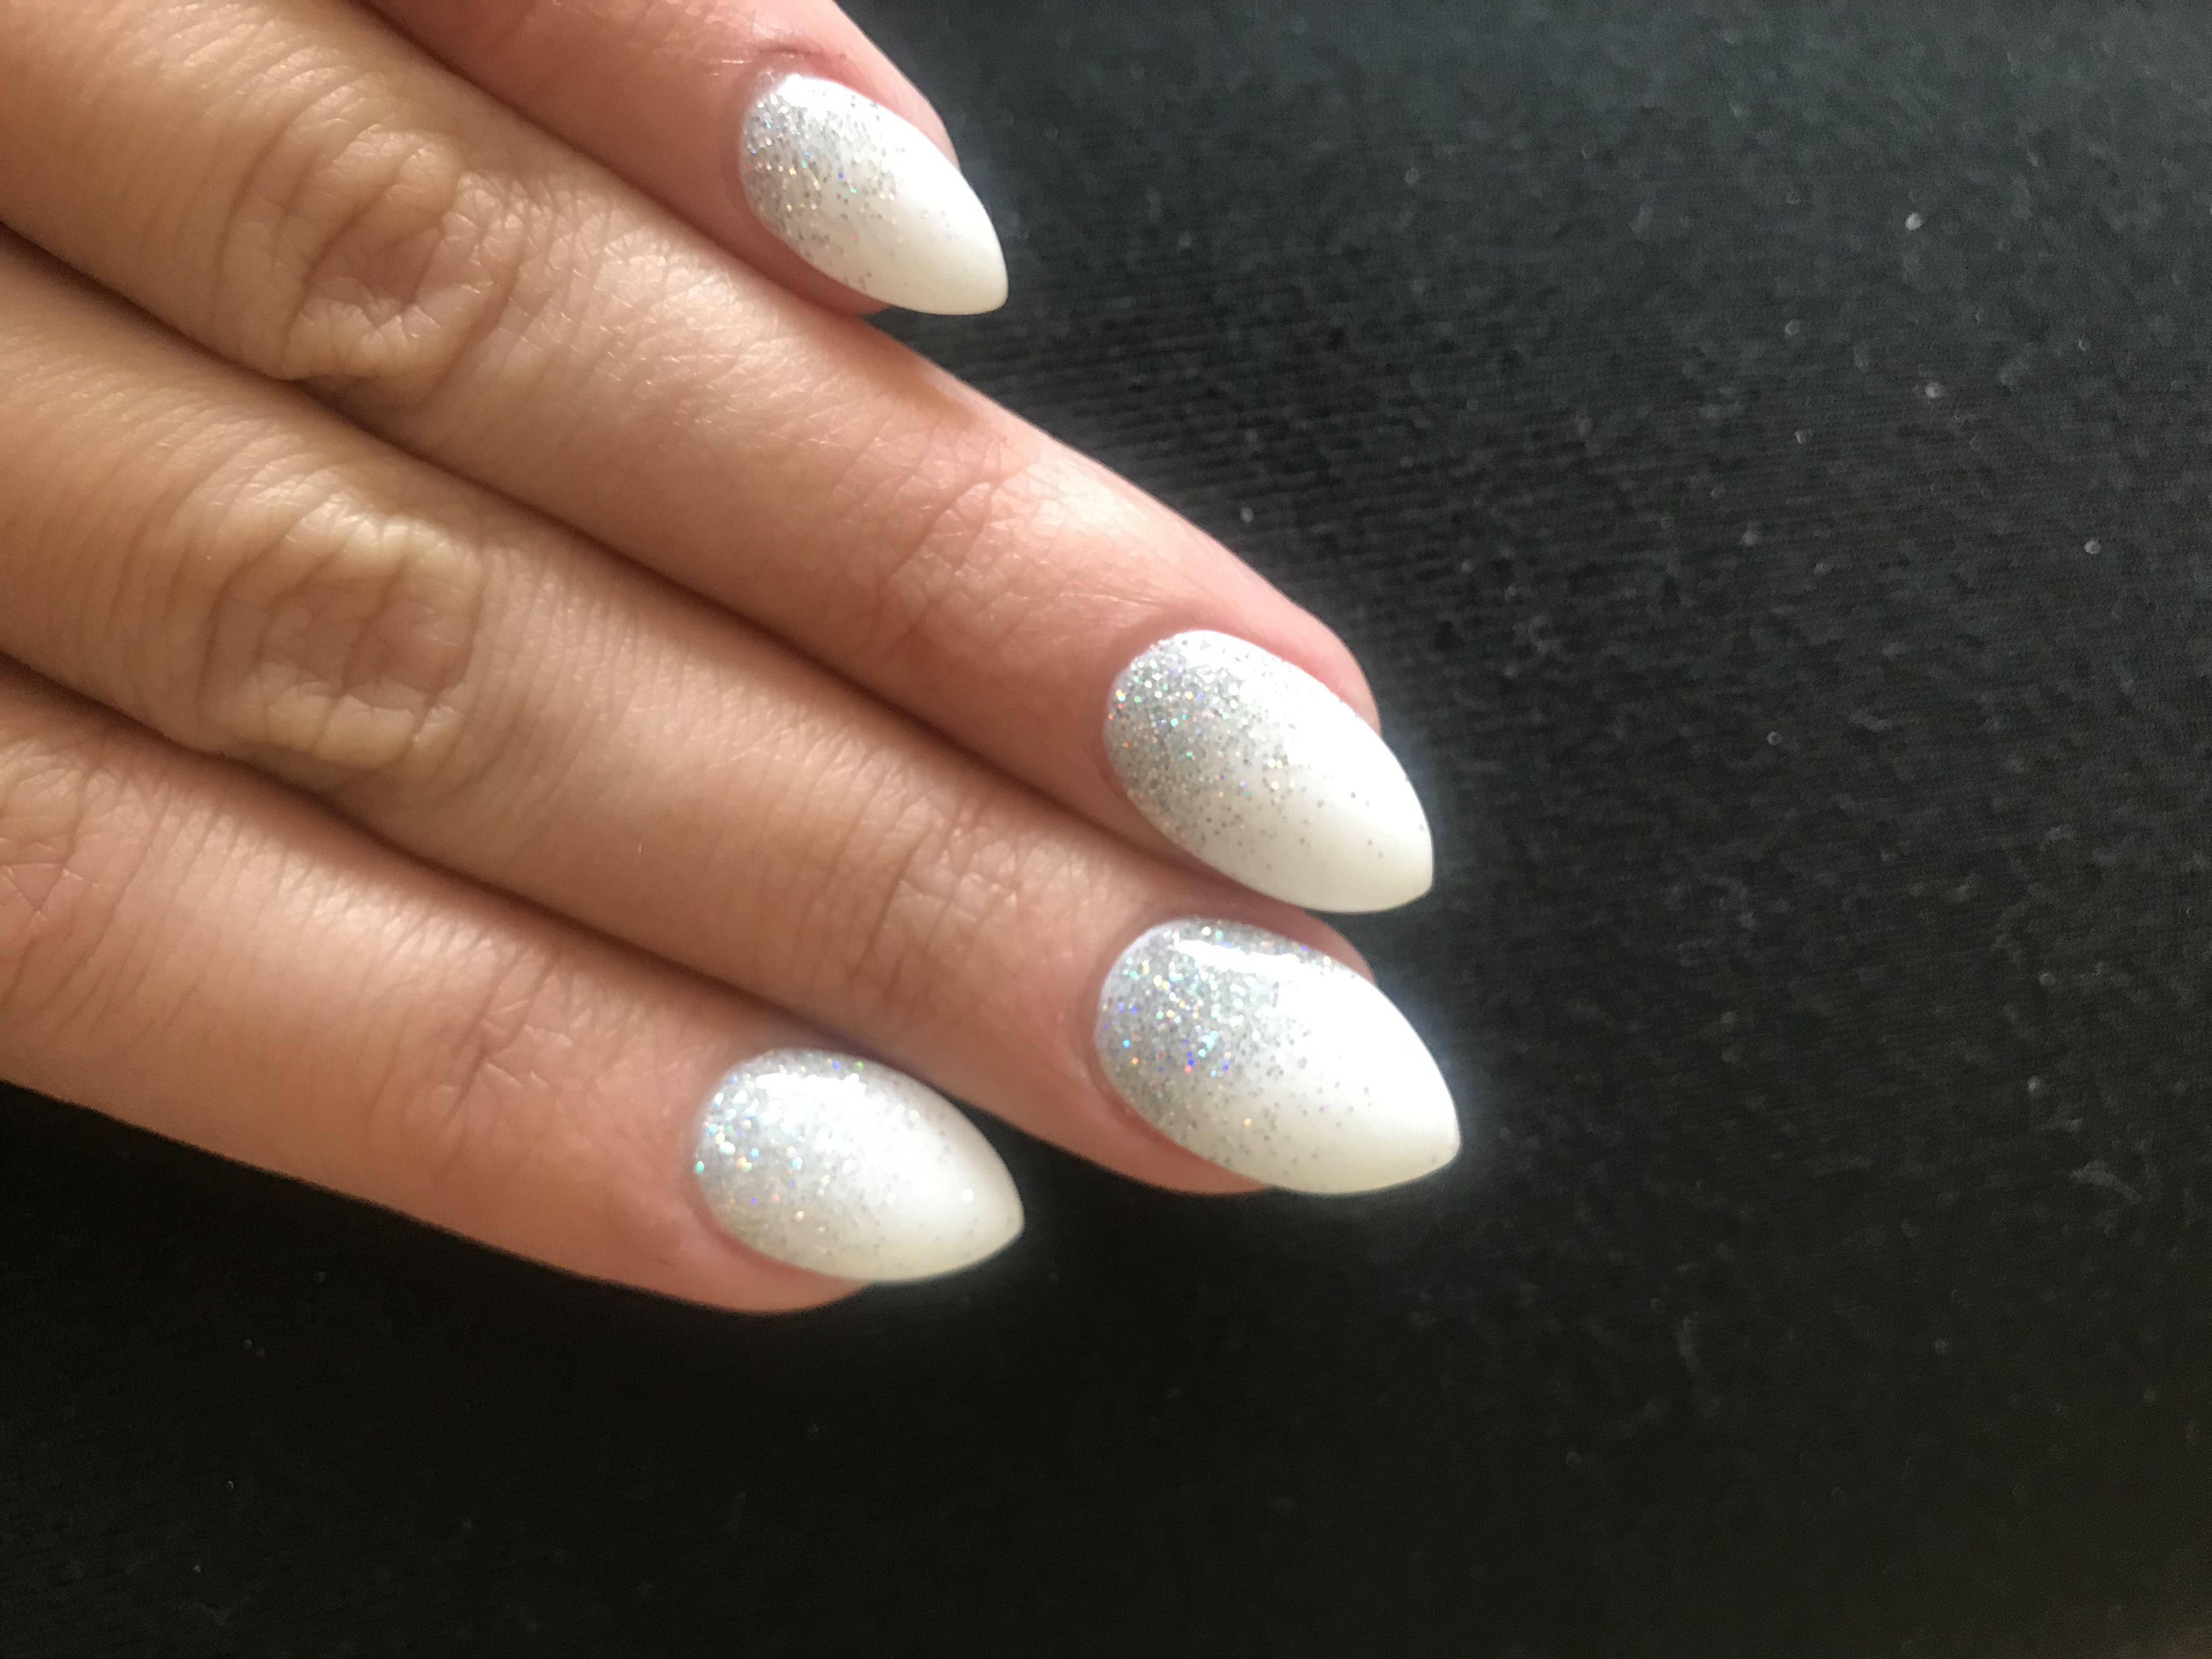 Ombre Nails White And Iridescent Silver Glitter Coffin Almond Powder Dip Real Nails Done By Jessica At Beauty Zo White Nails Ombre Nails Dip Powder Nails